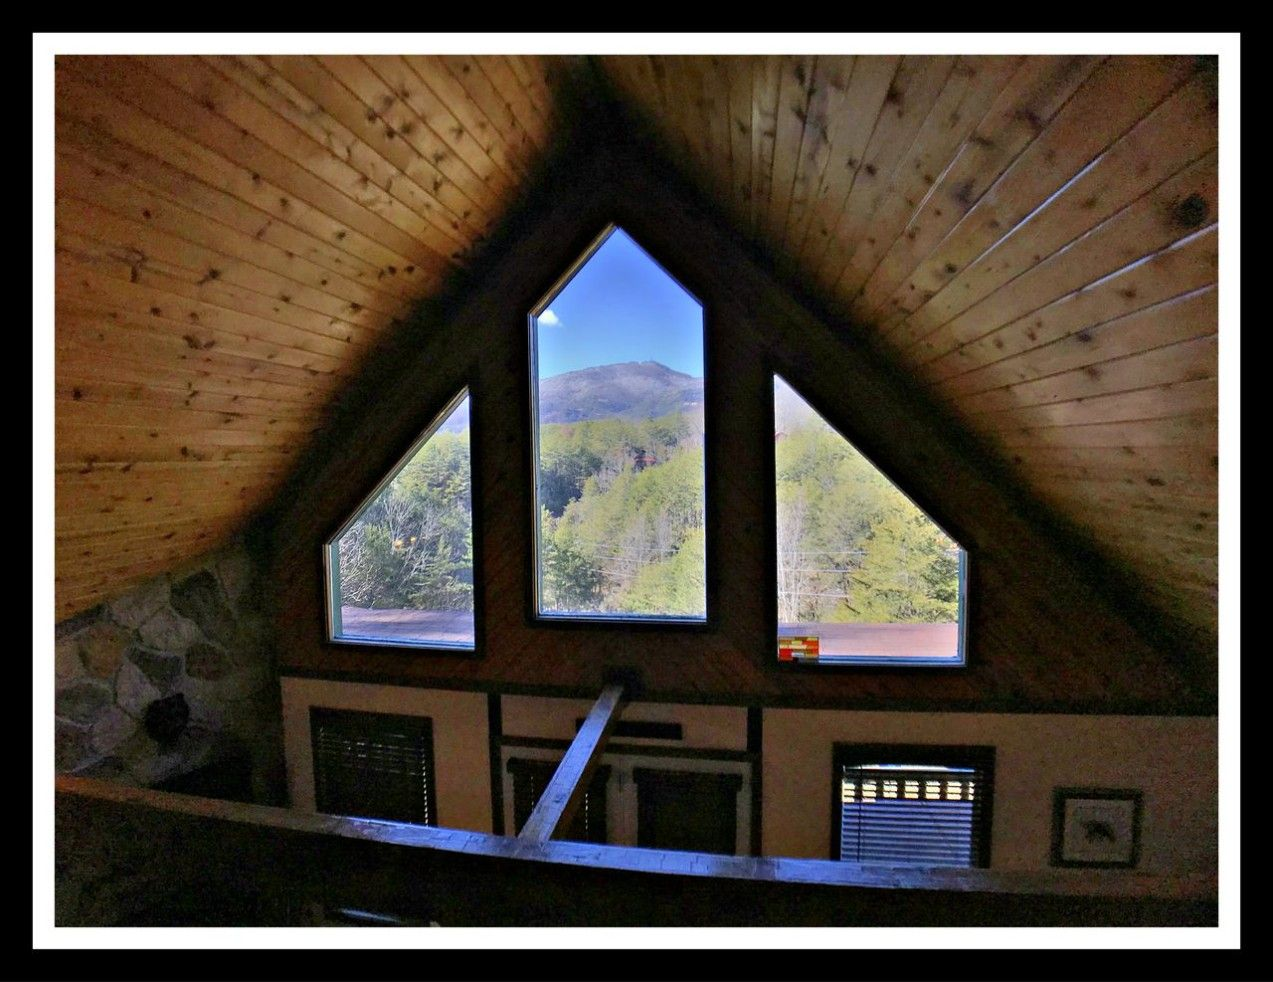 unique vacation rentals in pigeon Forge